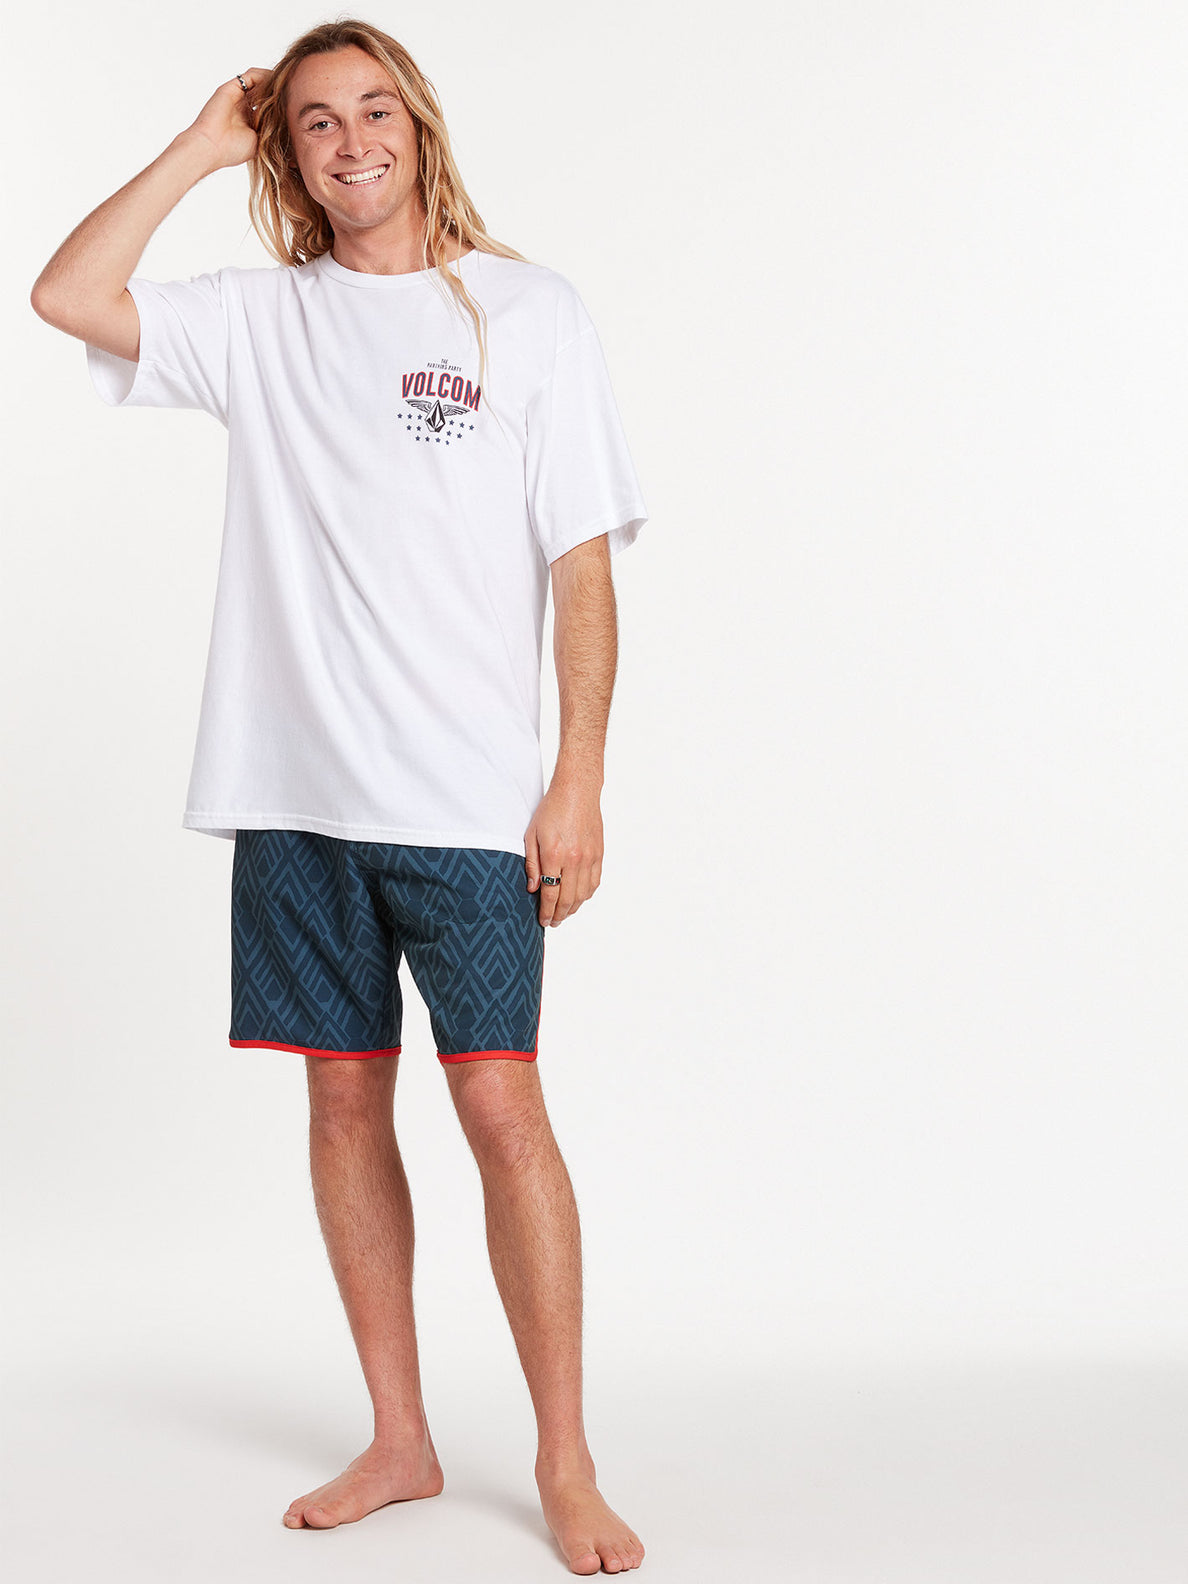 Pro Party Short Sleeve Tee - White (A3522006_WHT) [06]